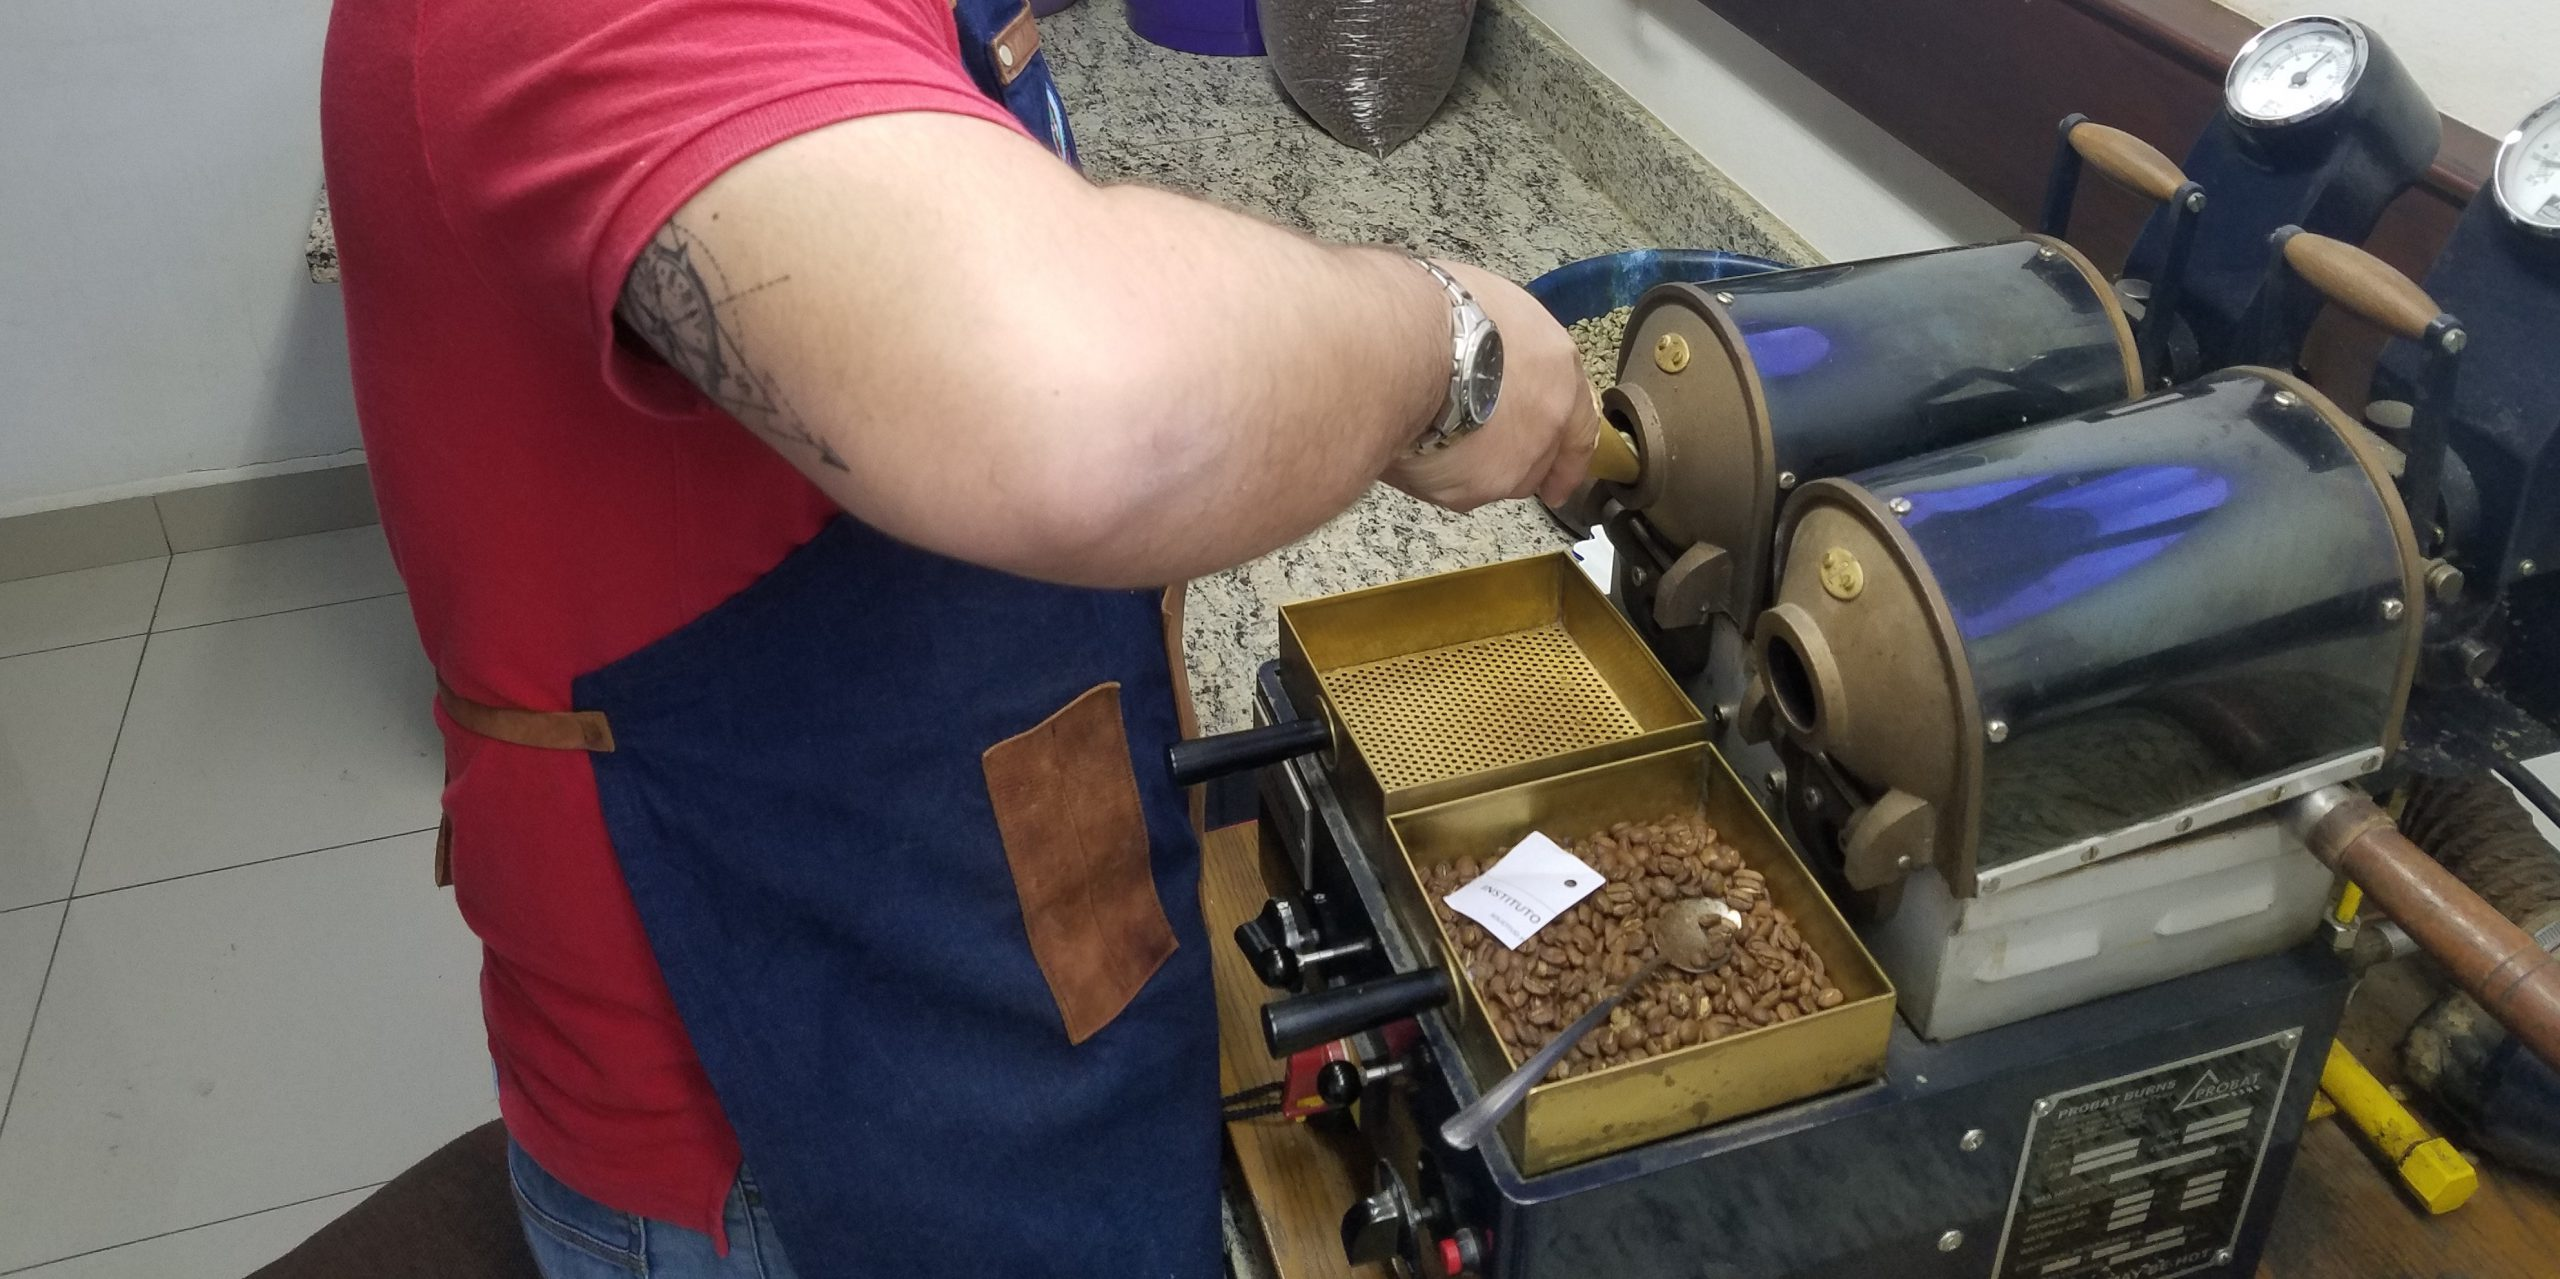 Roaster checking samples of roasted coffee beans